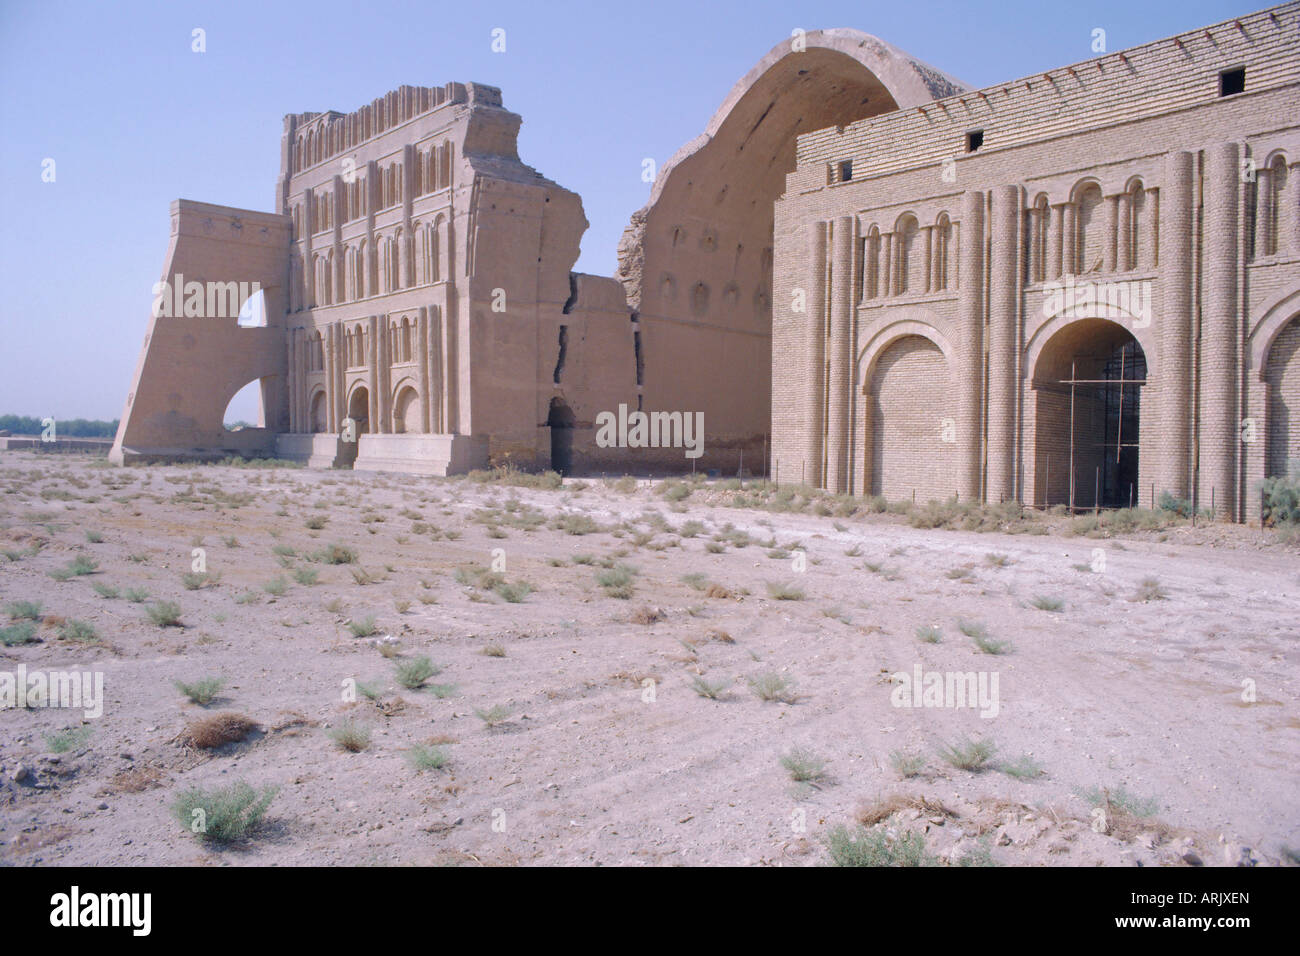 Ctesiphon (Al-Mada'in), the city dates from the 2nd century BC, 20 mile south of Baghdad, Iraq, Middle East - Stock Image